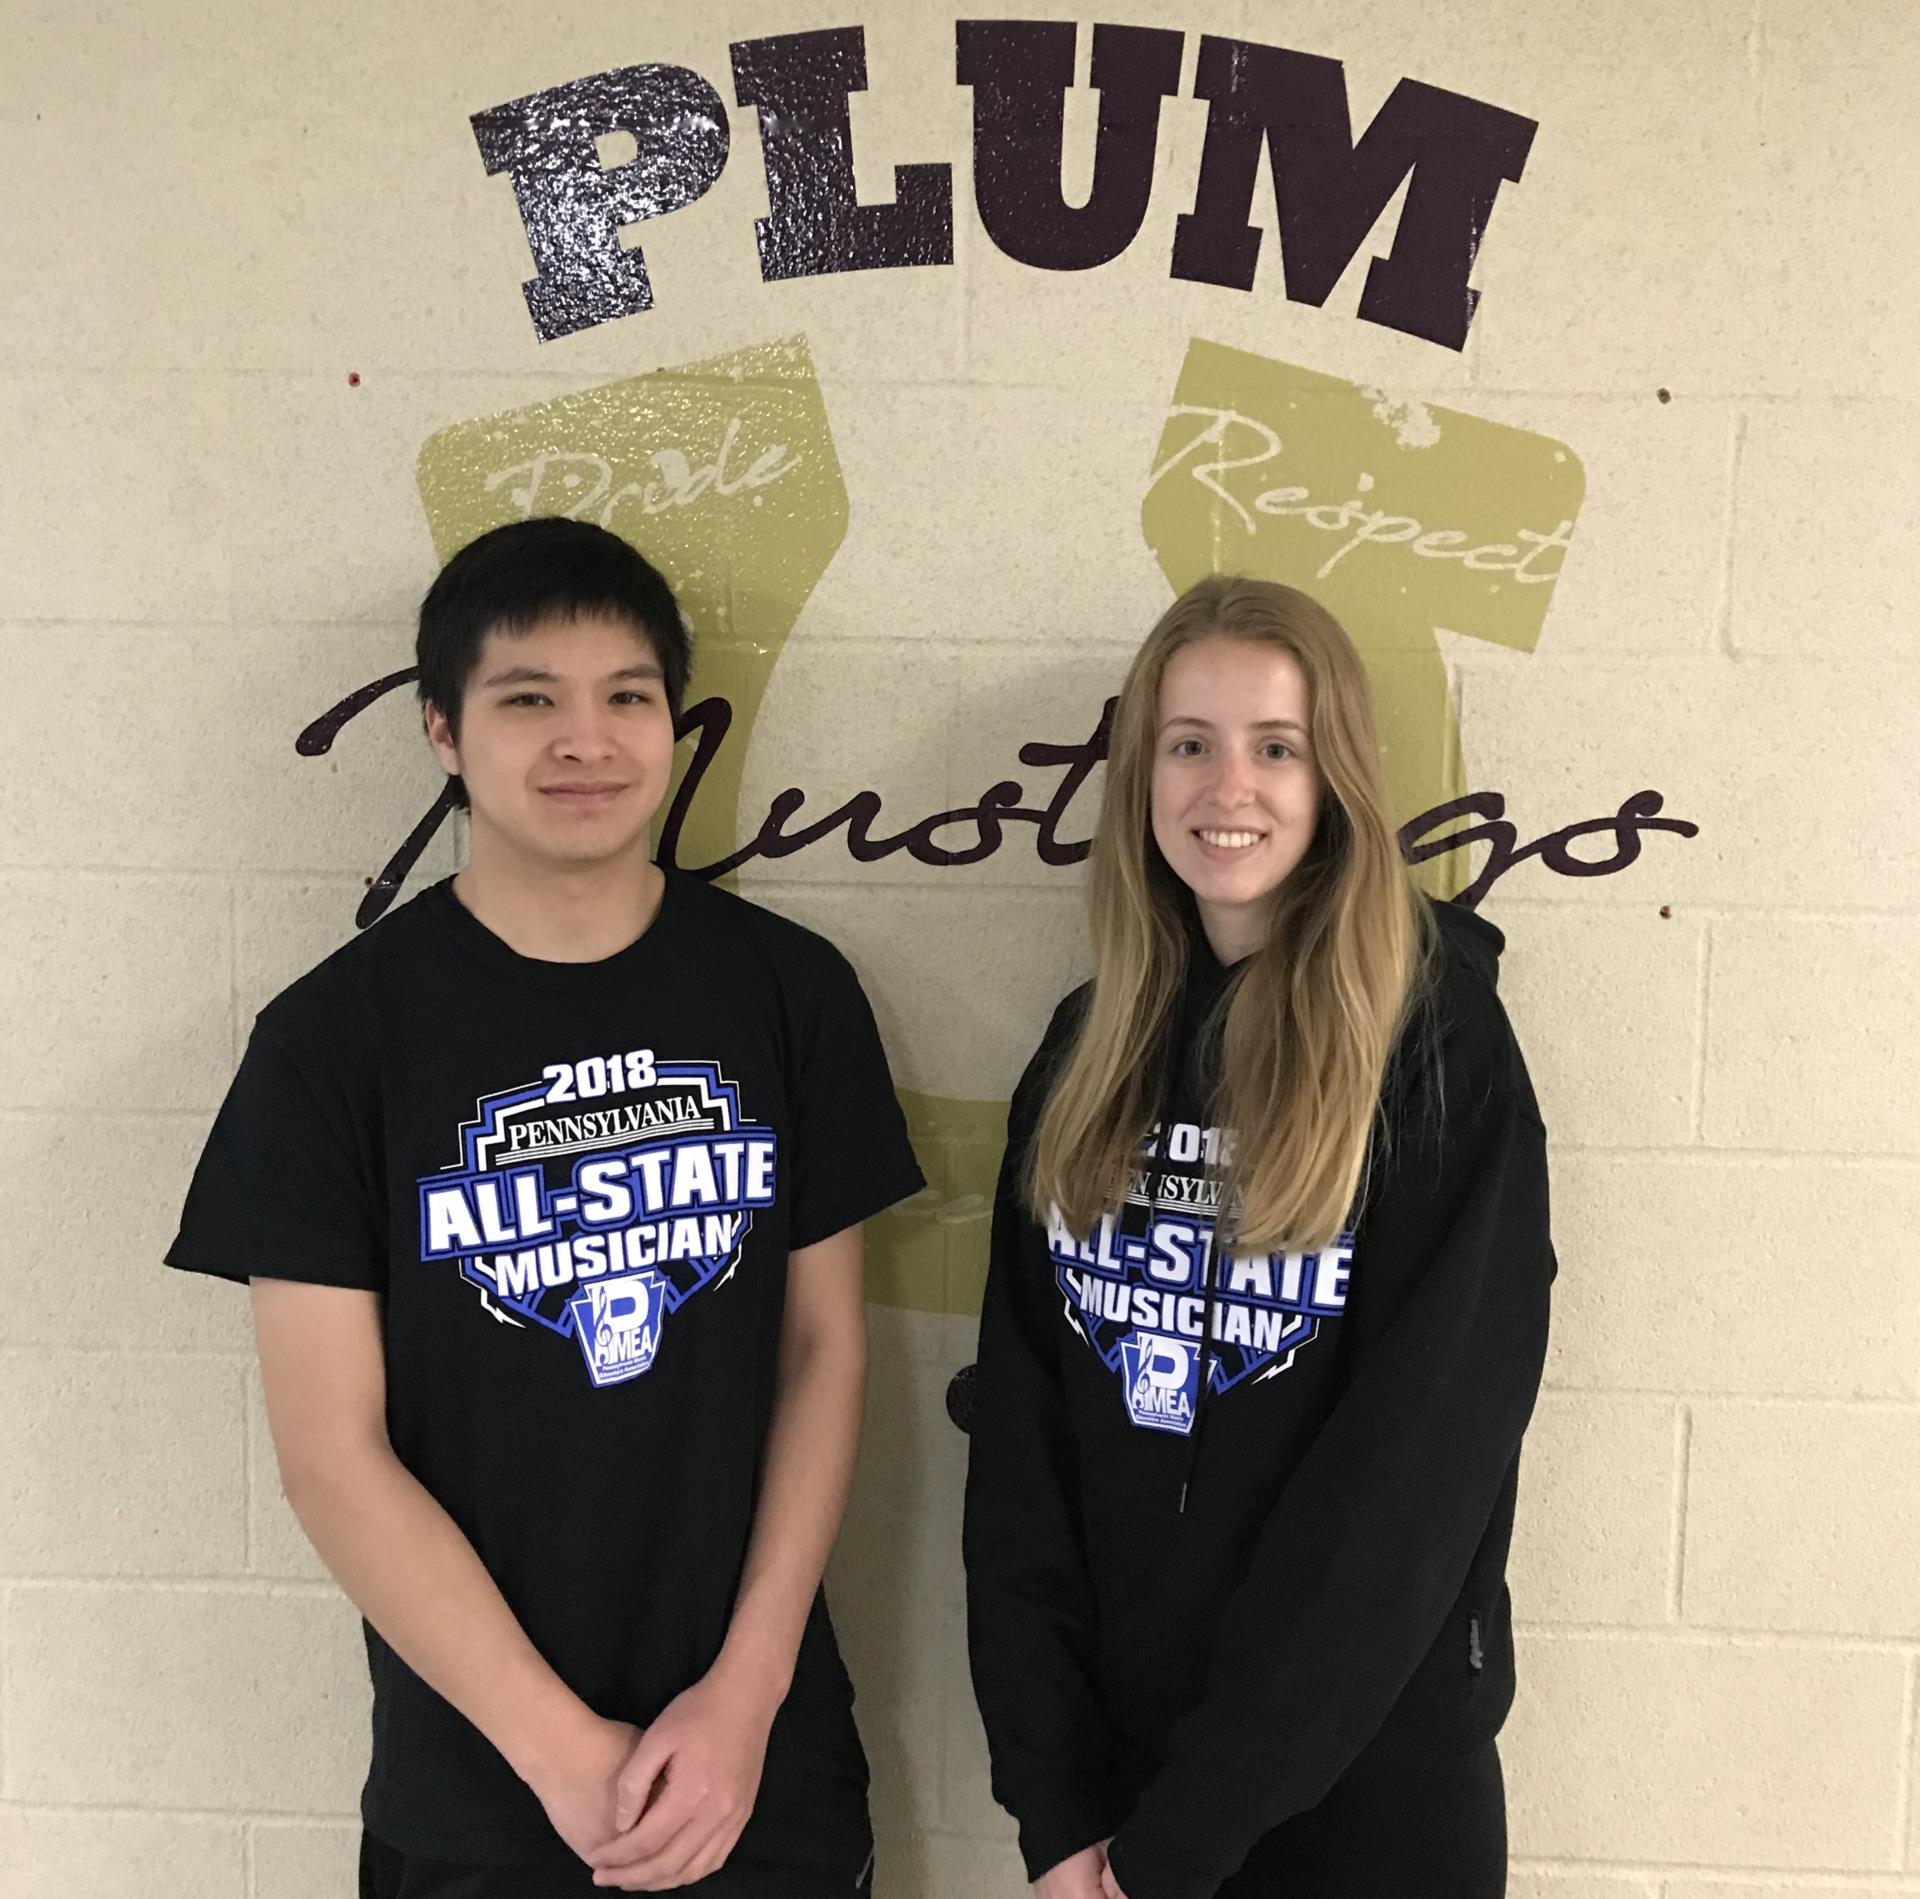 All-State Orchestra members